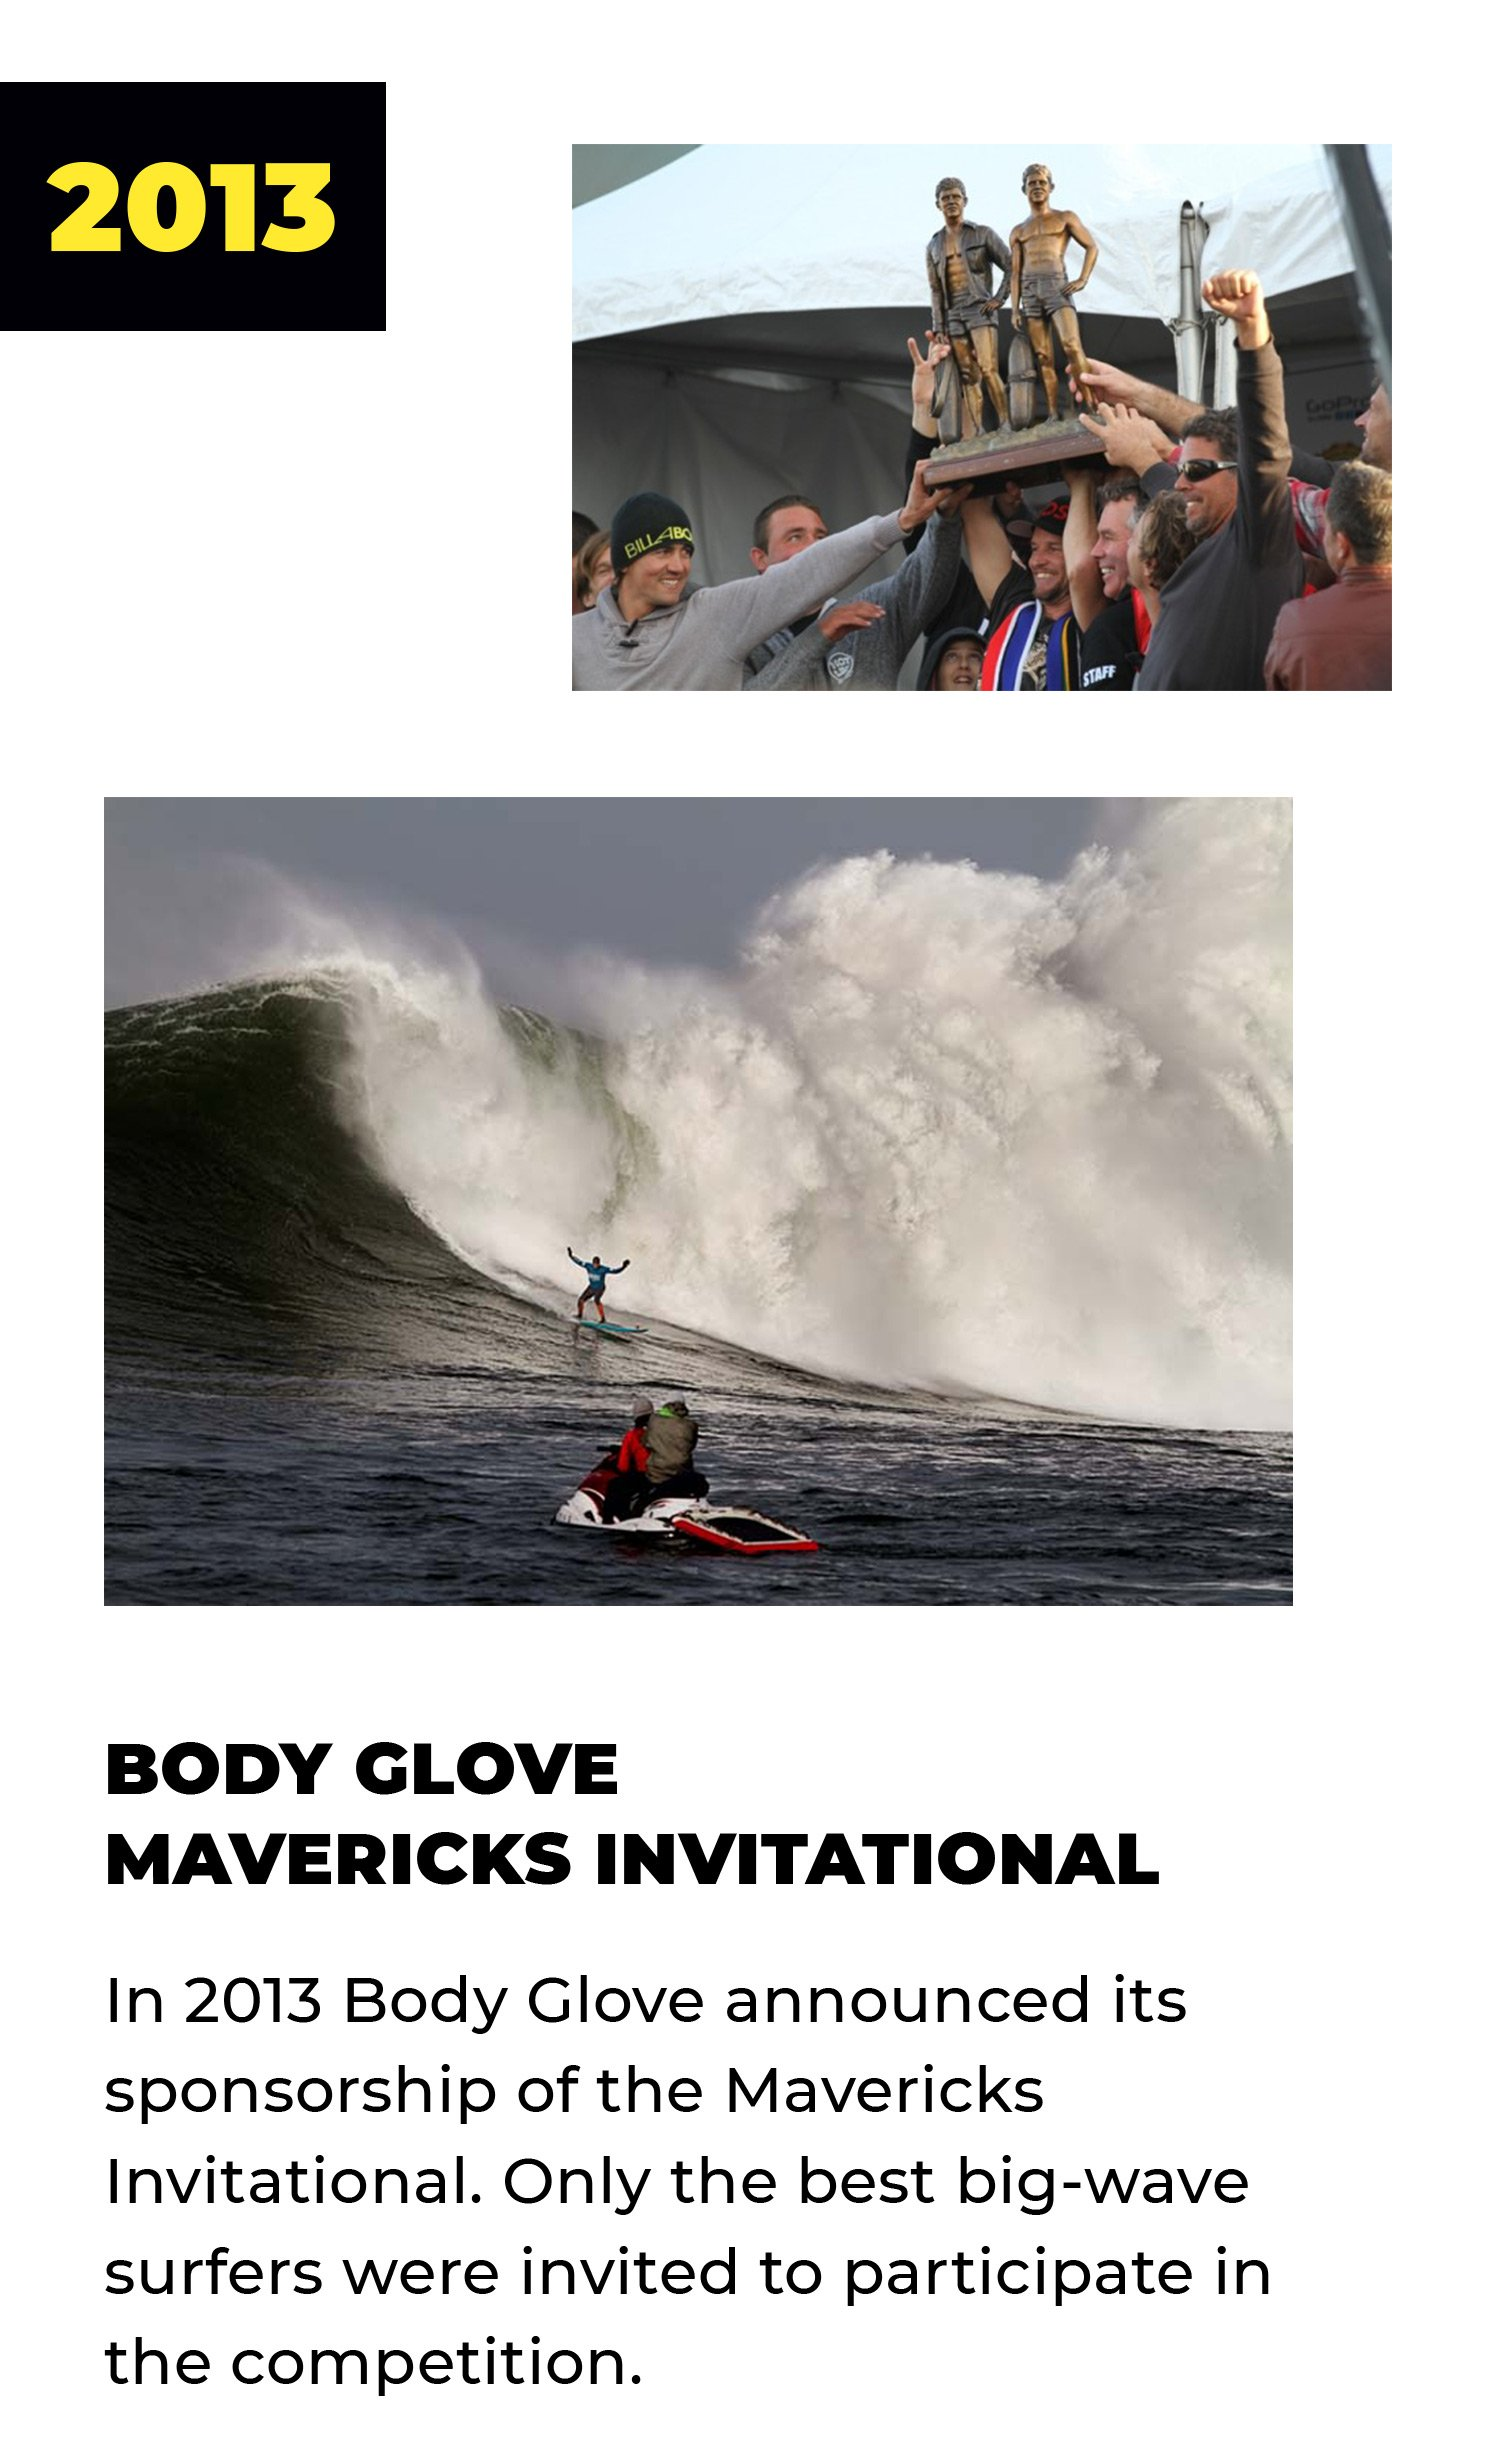 2013 | Body Glove Mavericks Invitational | In 2013 Body Glove announced its sponsorship of the Mavericks Invitational. Only the best big-wave surfers were invited to participate in the competition.